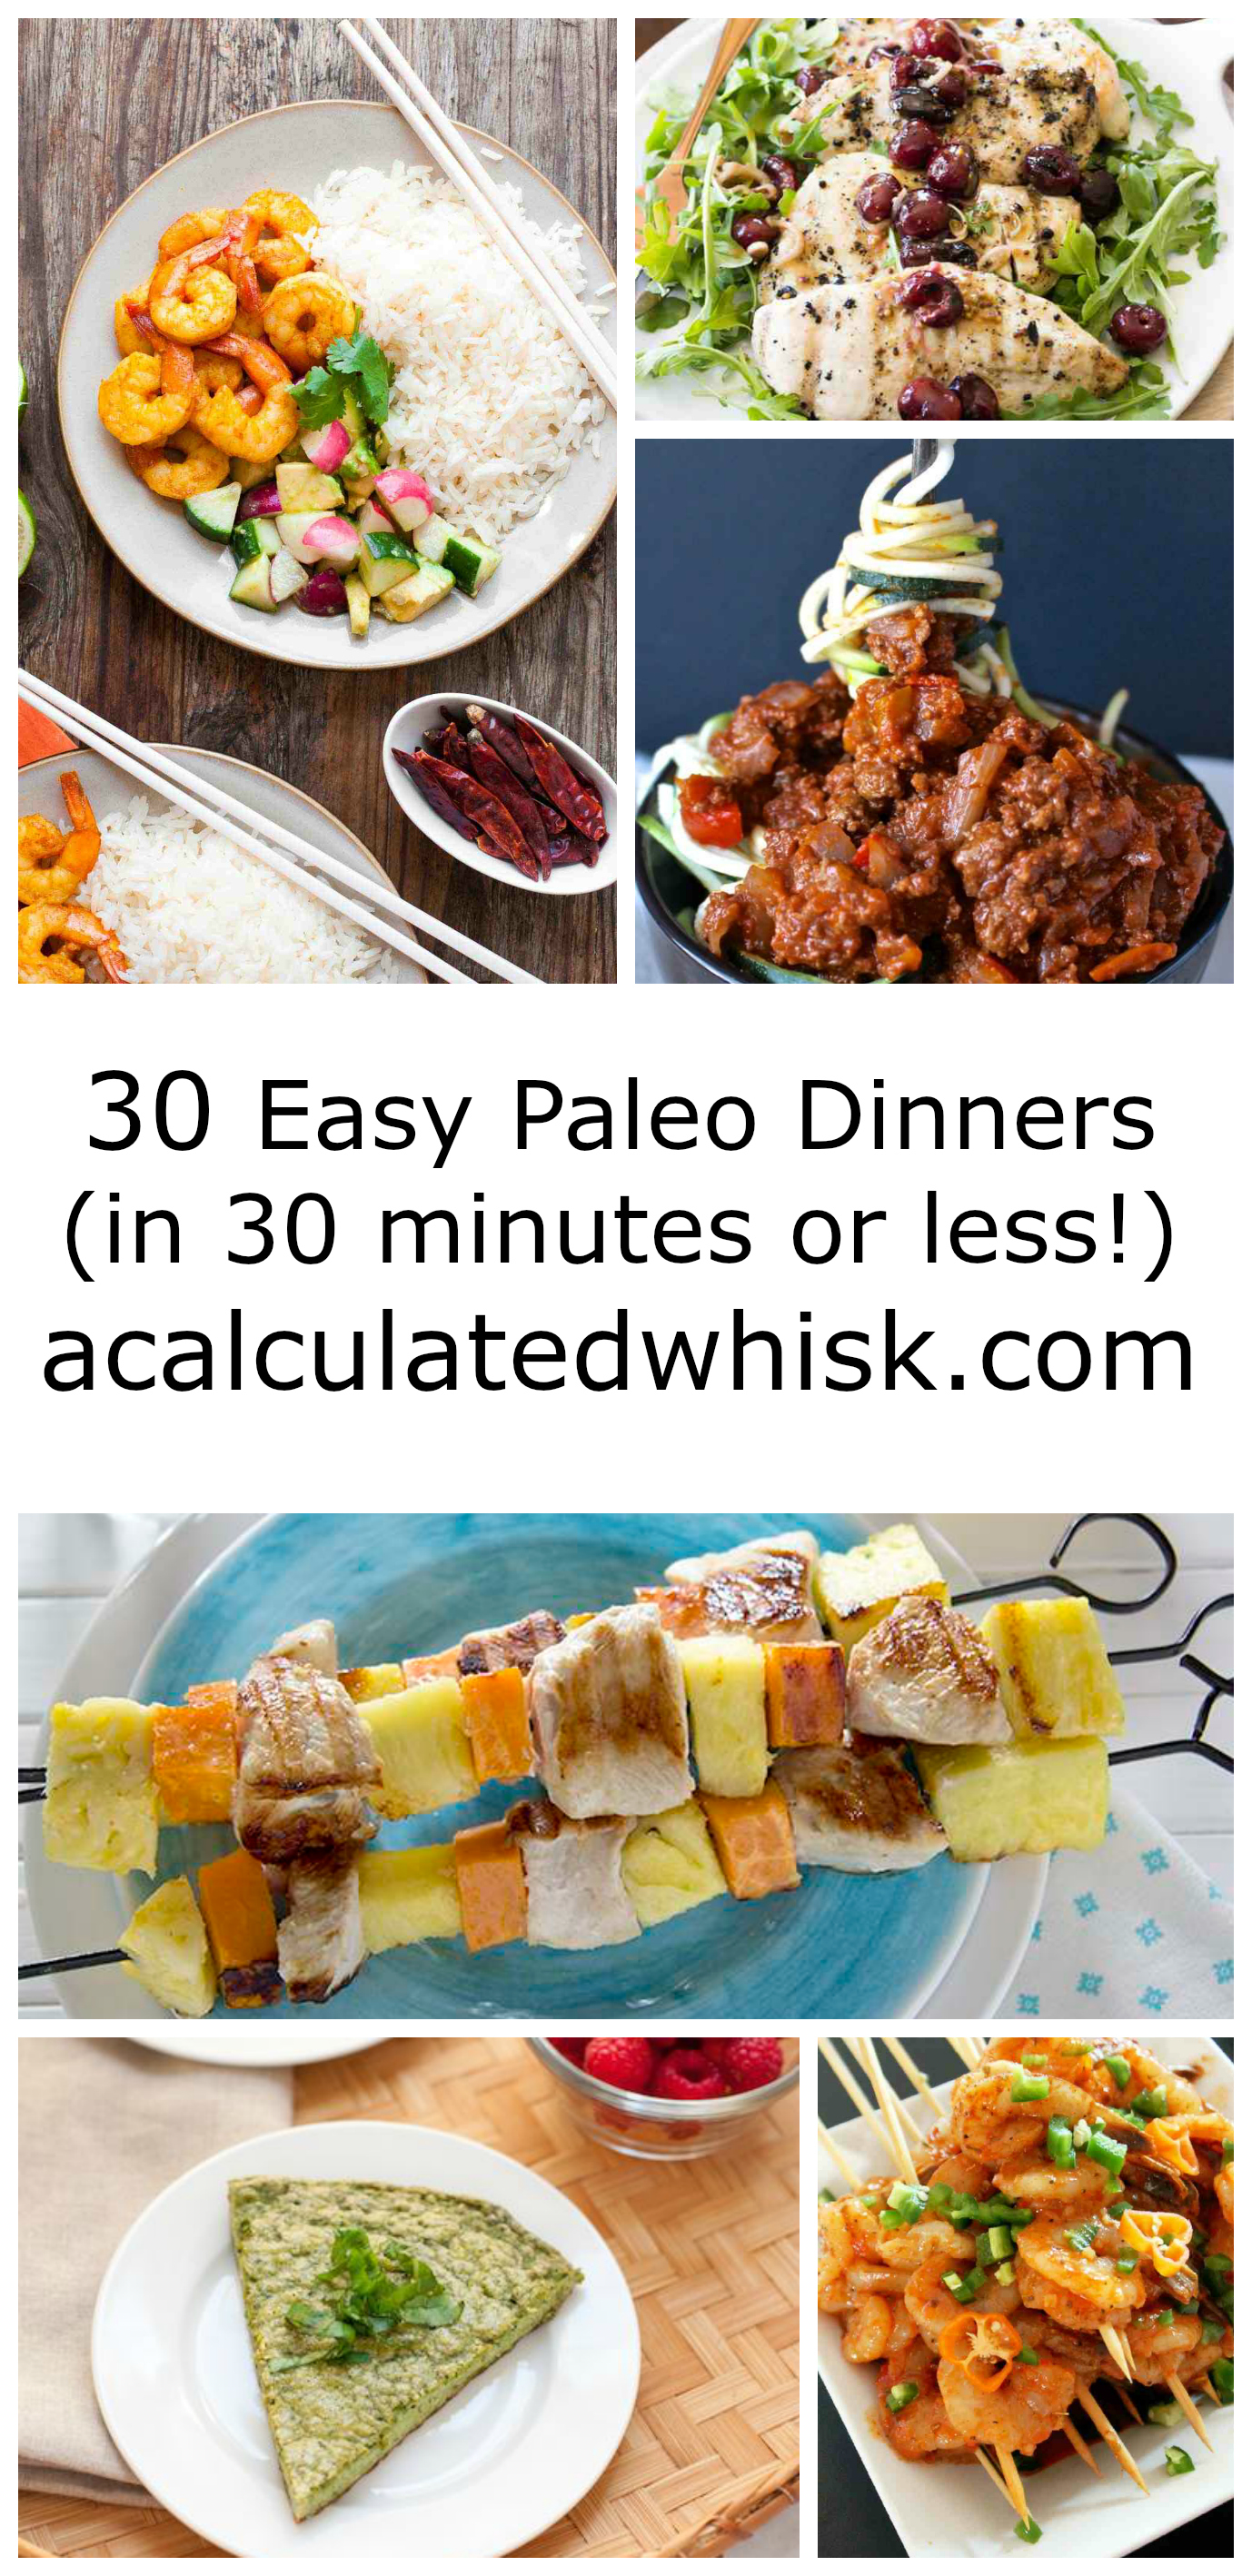 30 Easy Paleo Dinners (in 30 minutes or less!) | acalculatedwhisk.com